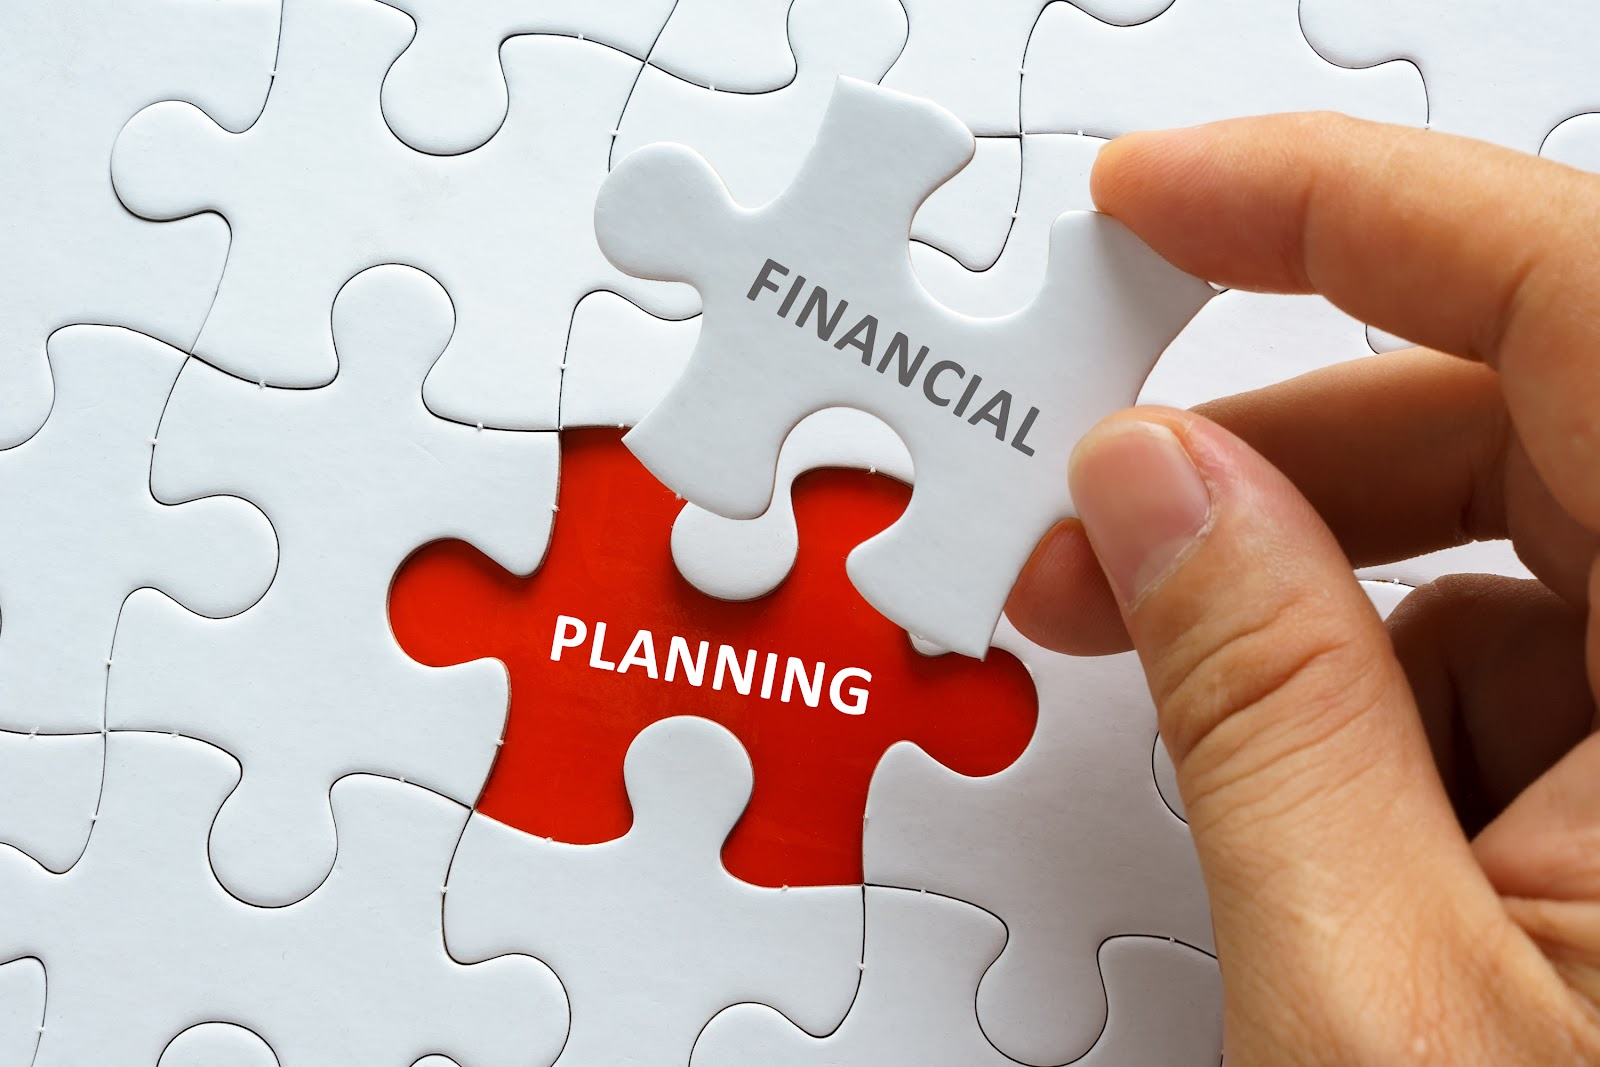 islamic financial planning and wealth management